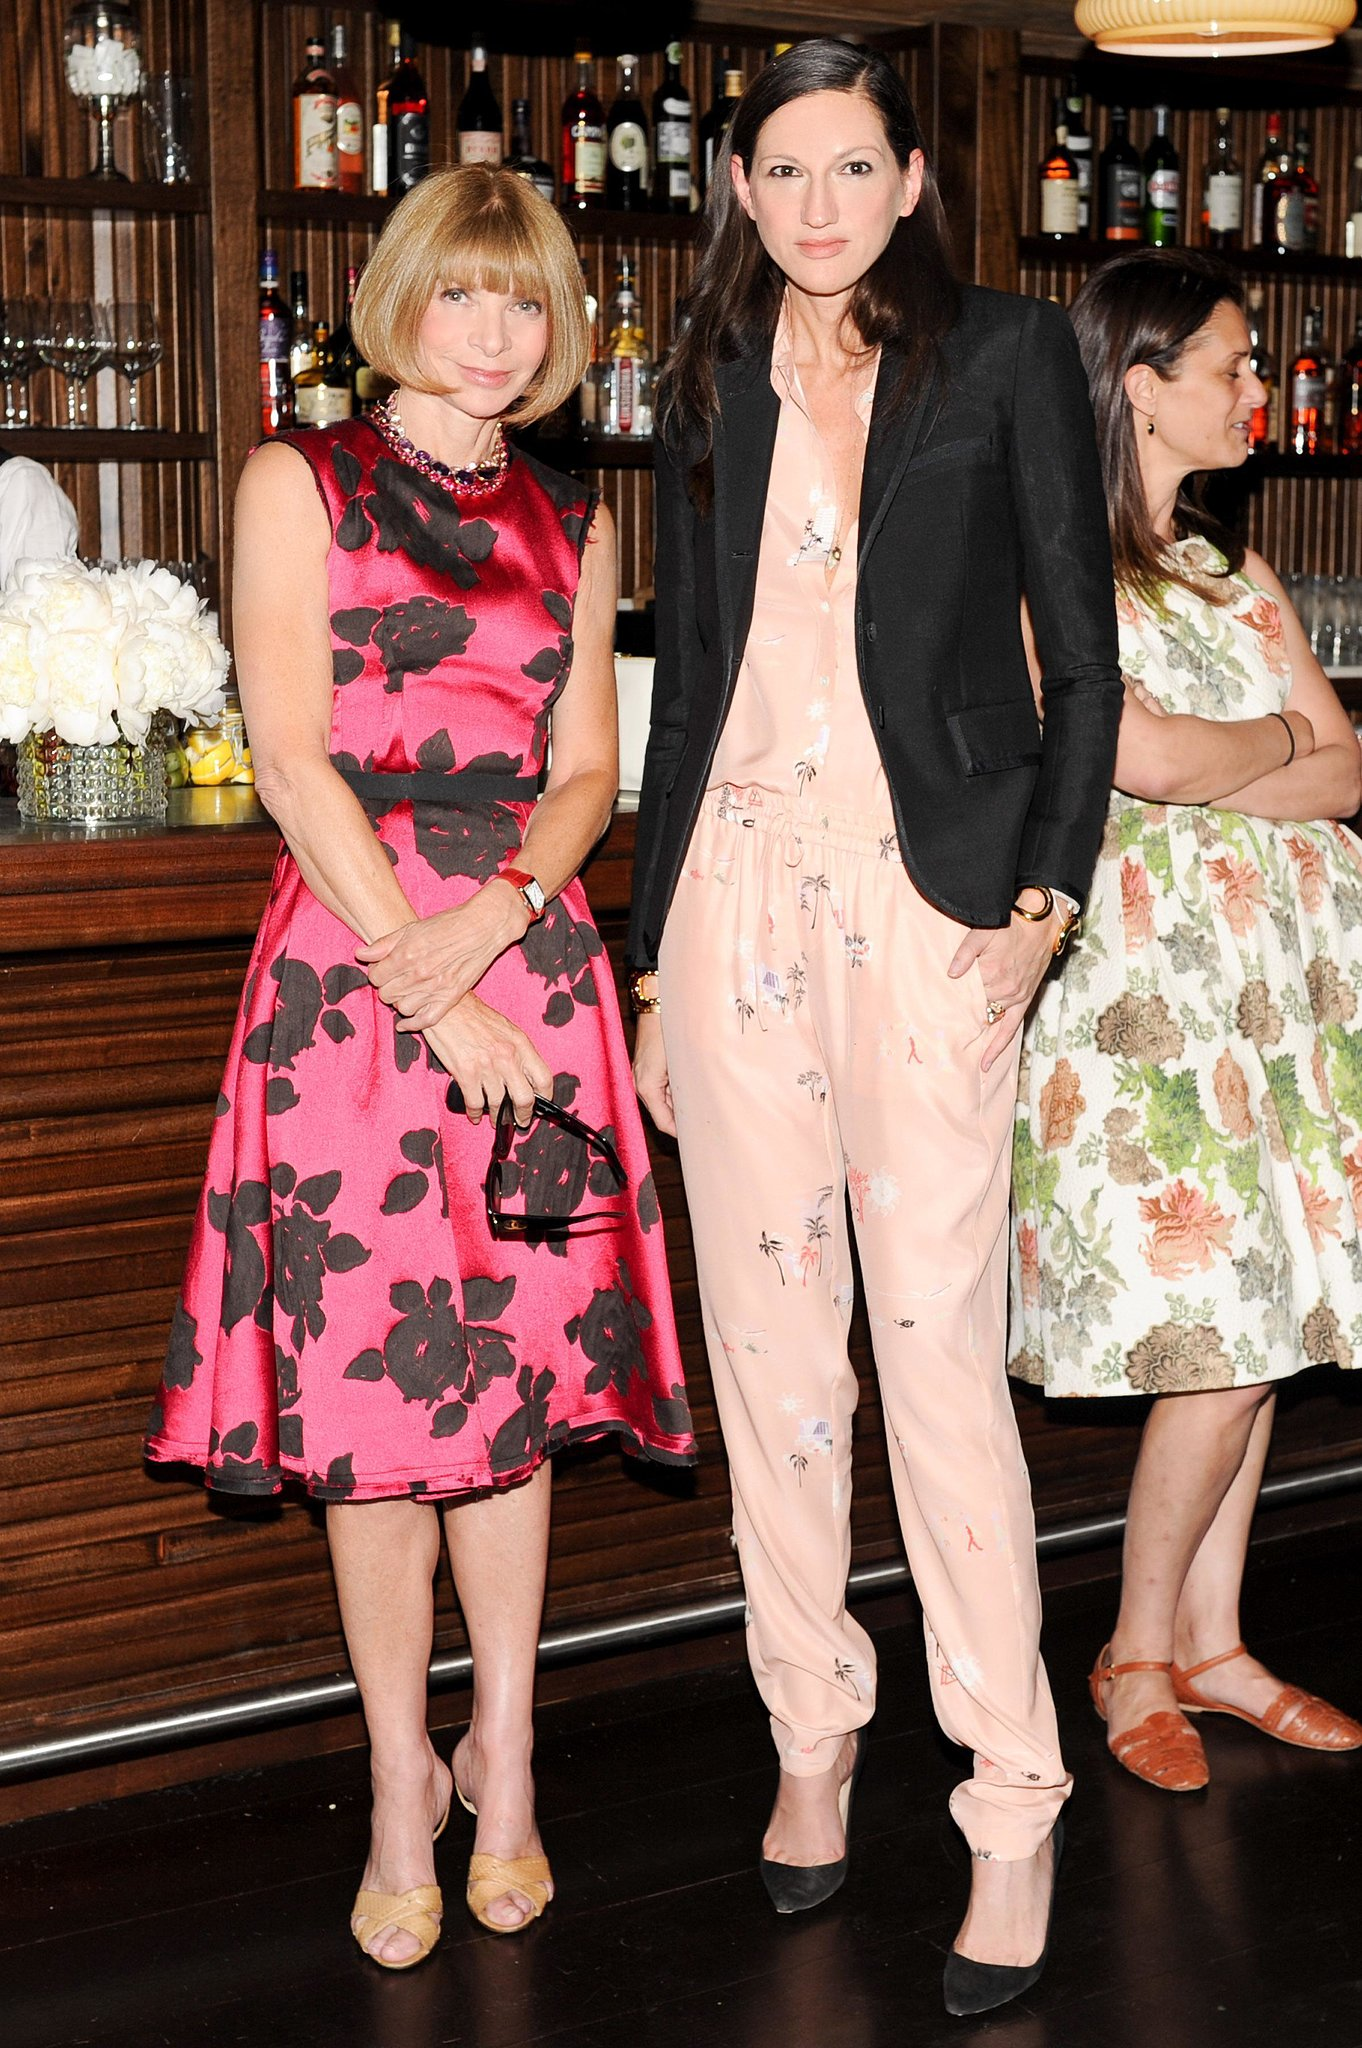 Anna Wintour and Jenna Lyons at the J.Crew and CFDA/Vogue Fashion Fund dinner in NYC. Source: Neil Rasmus/BFAnyc.com